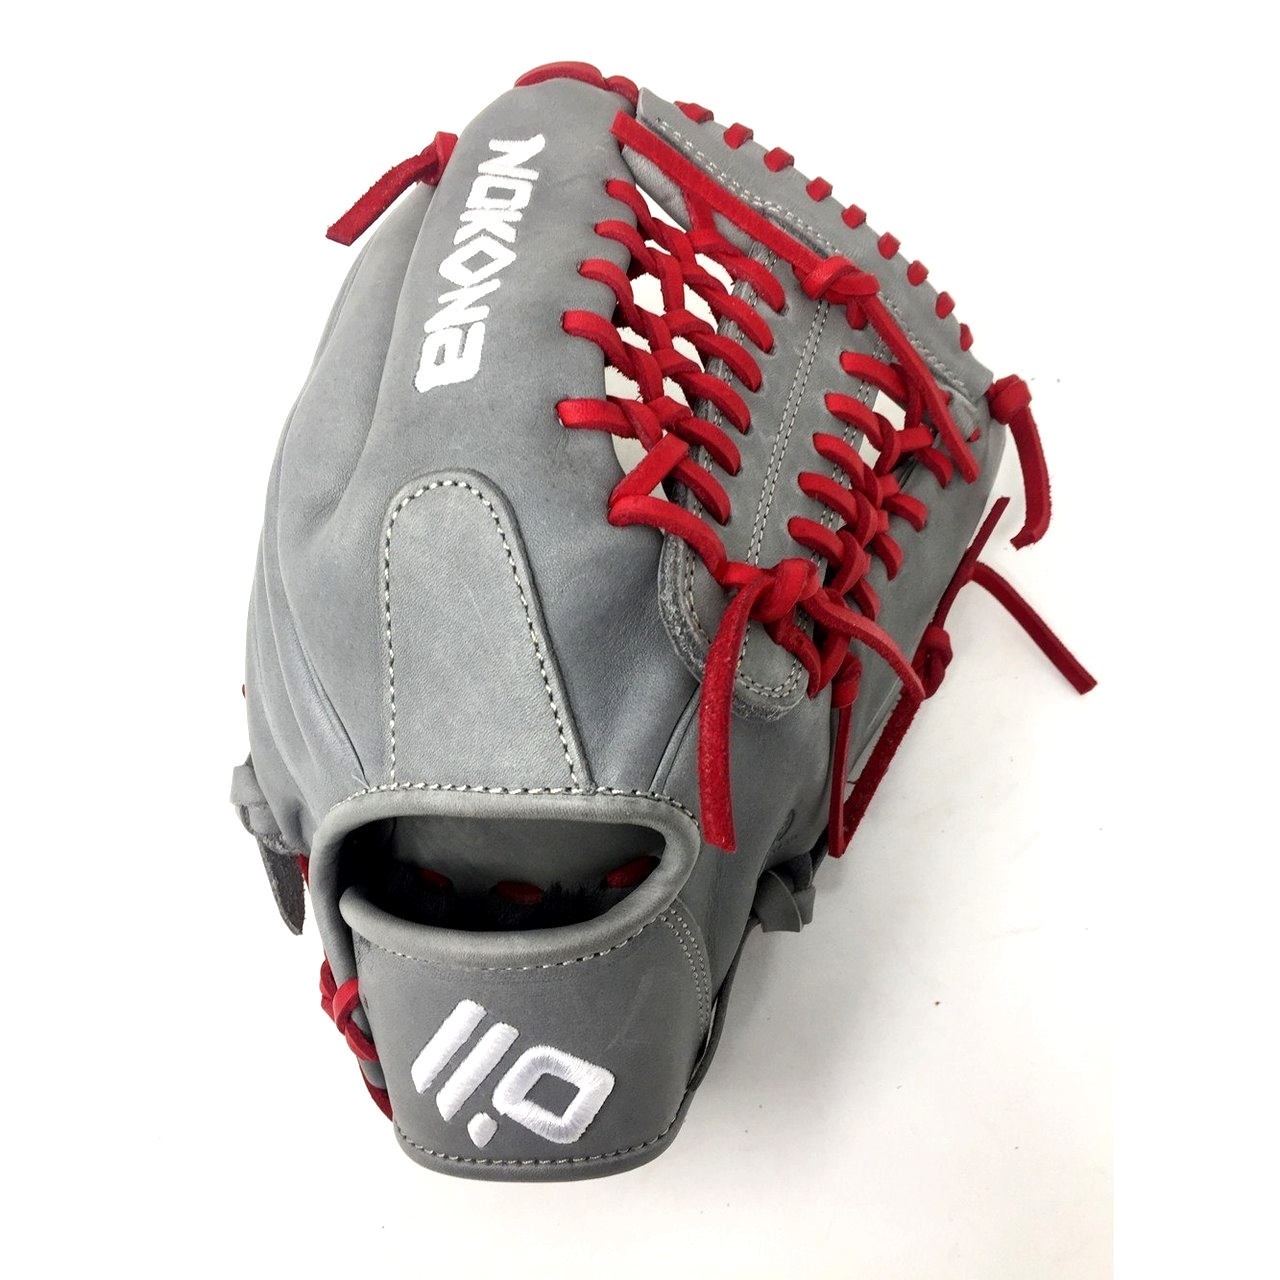 nokona-american-kip-gray-with-red-laces-11-5-baseball-glove-mod-trap-web-right-hand-throw A-1150M-GR-RD-RightHandThrow Nokona Does Not Apply The American Kip series made with the finest American steer hide